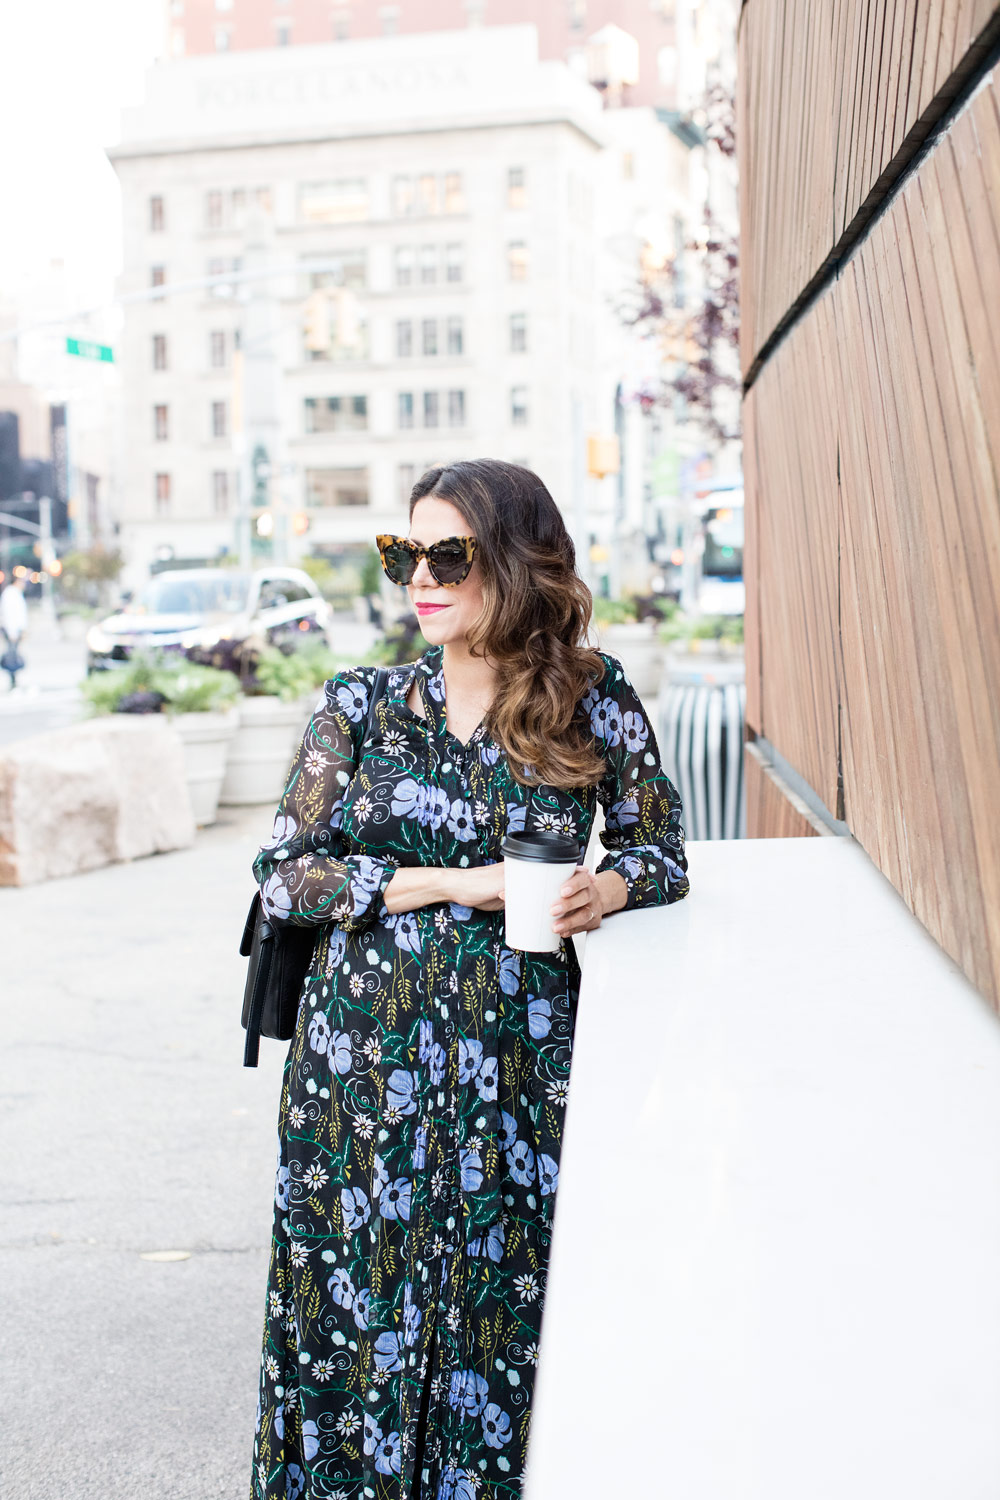 floral-dress-banana-republic-worth-new-york-fall-style-corporate-catwalk-joie-suede-boots-new-york-city-fashion-blogger-6